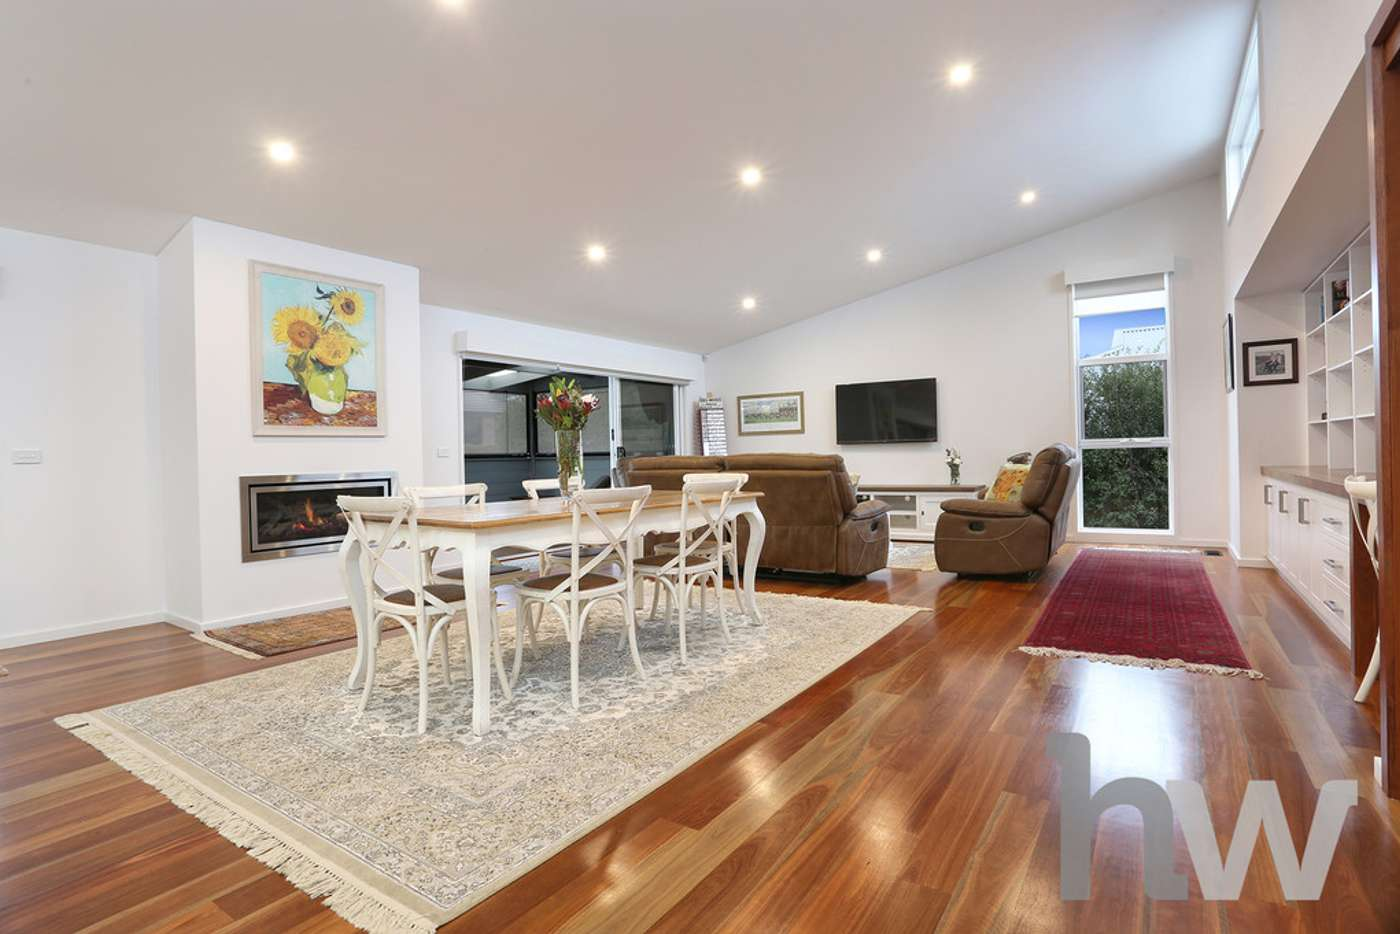 Sixth view of Homely house listing, 15 Platinum Avenue, Drysdale VIC 3222